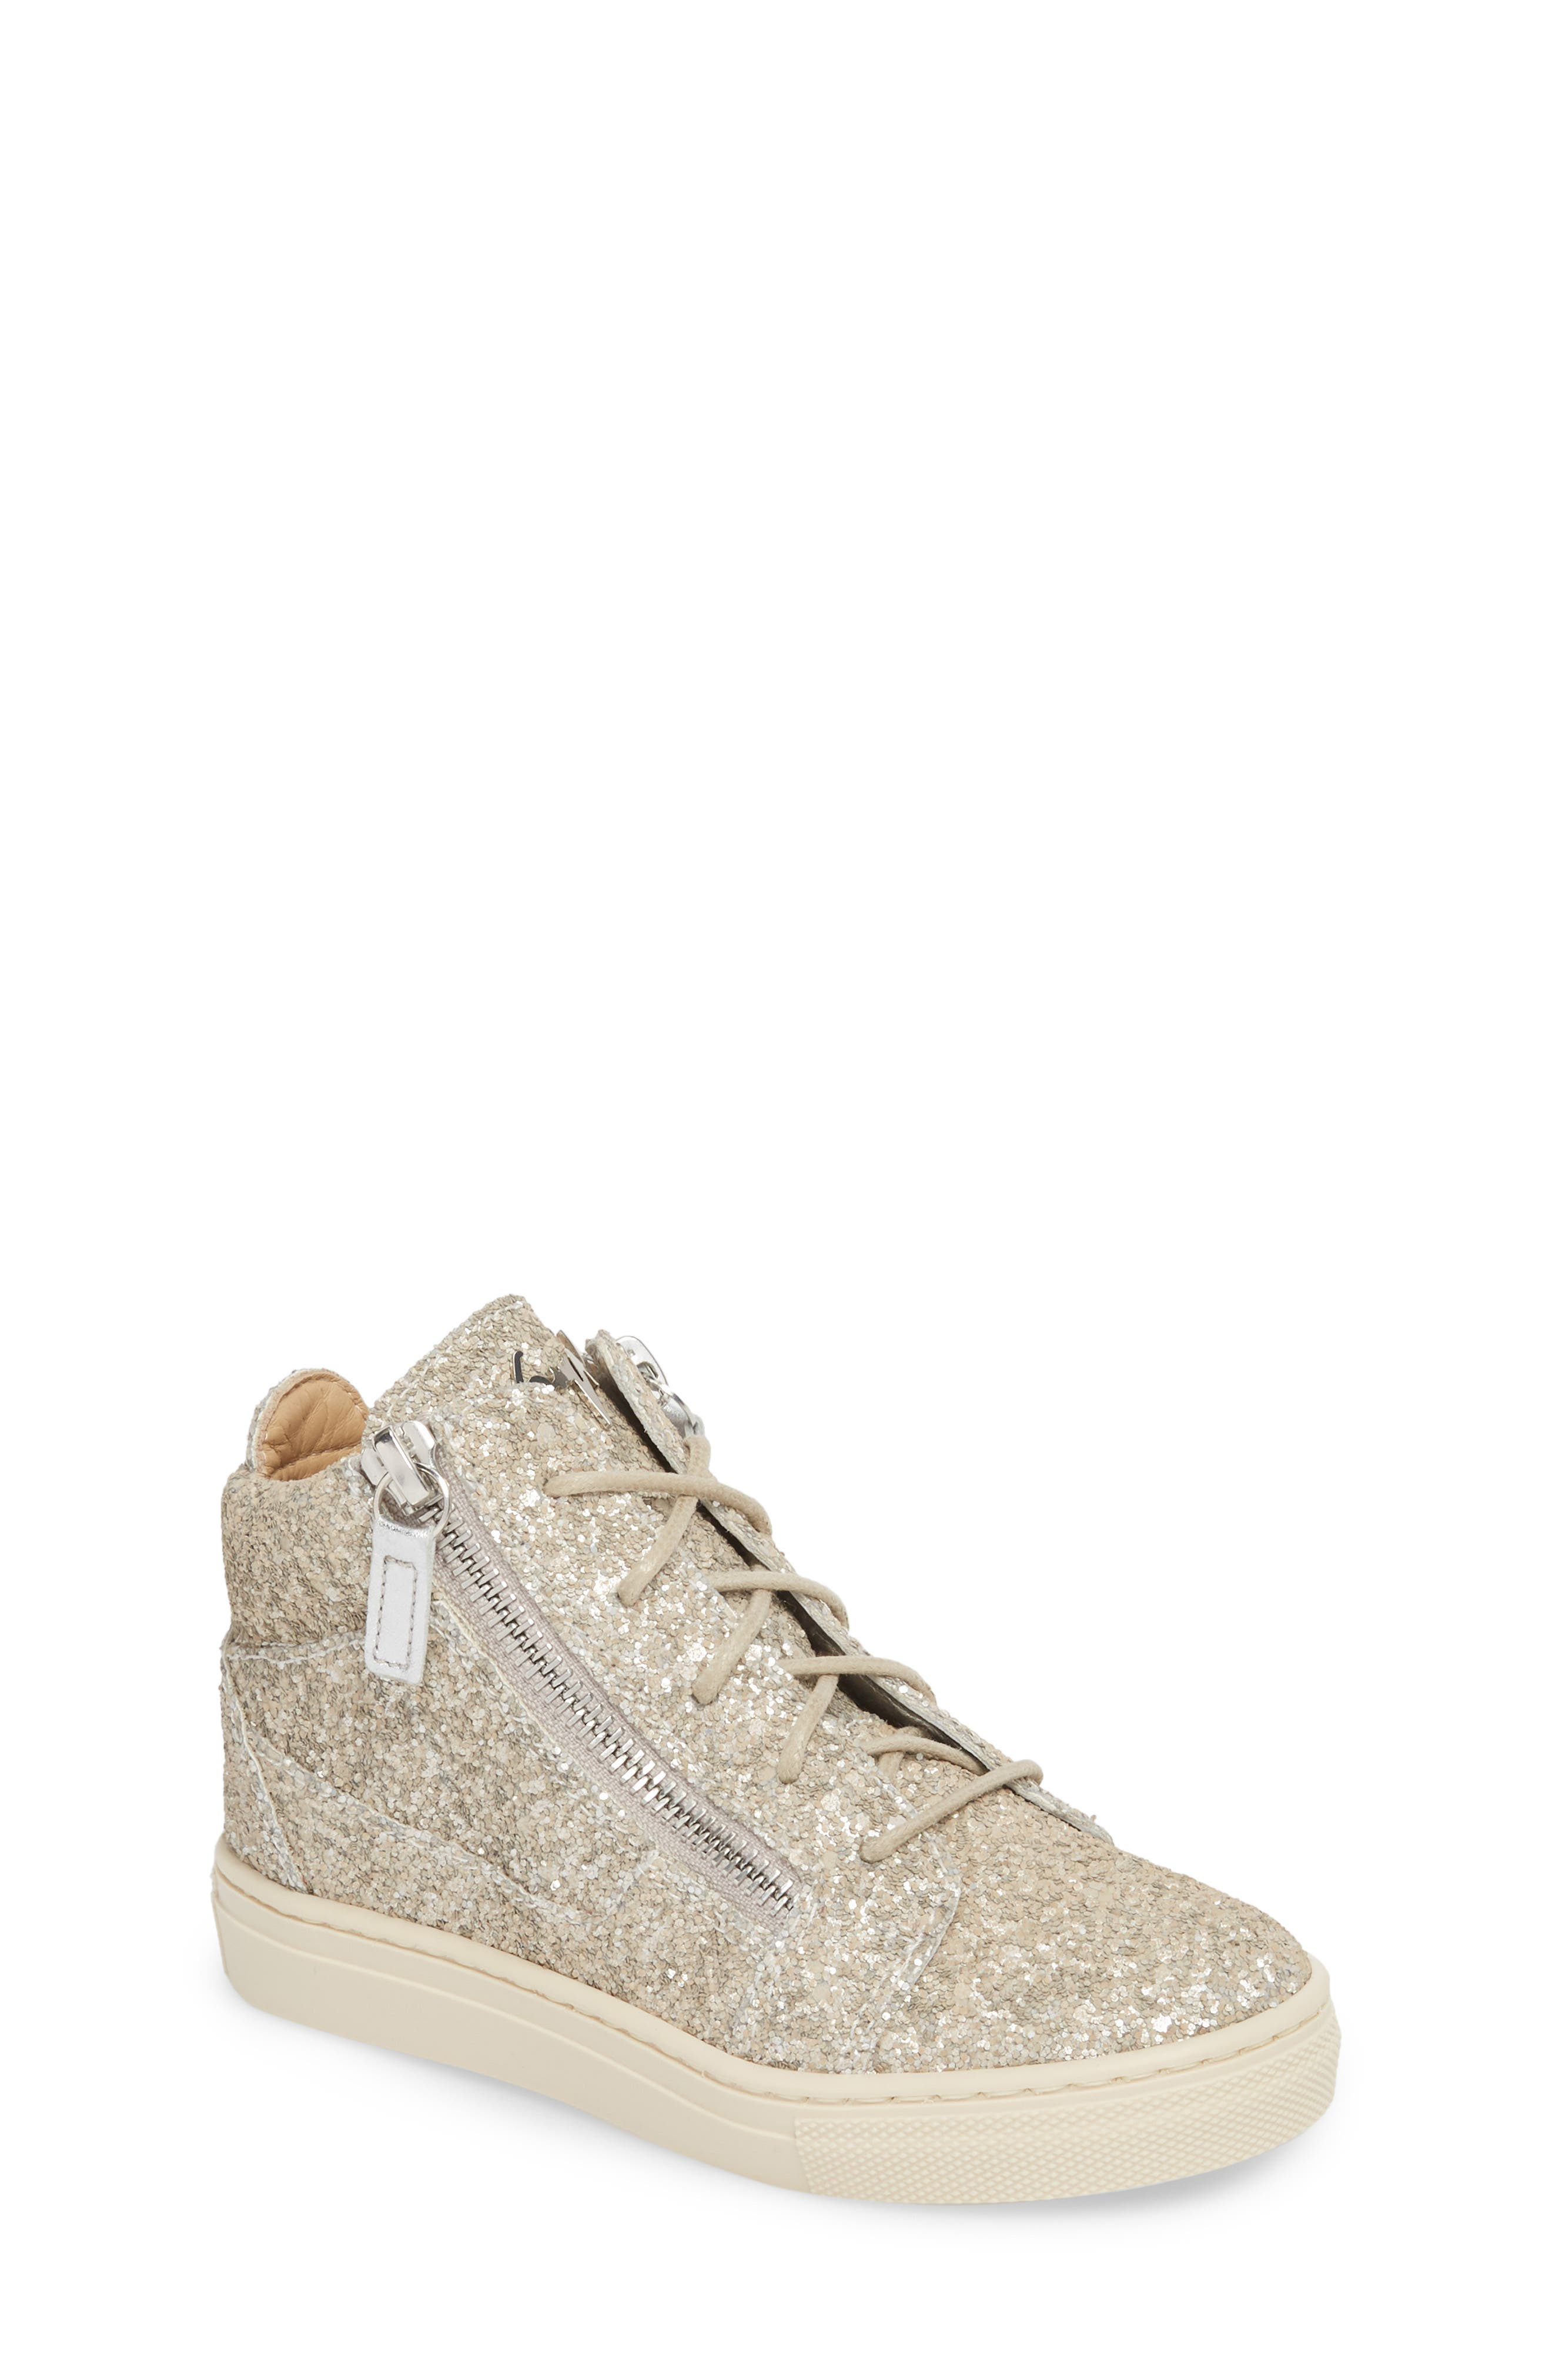 Natalie High Top Sneaker,                             Main thumbnail 1, color,                             Silver Glitter